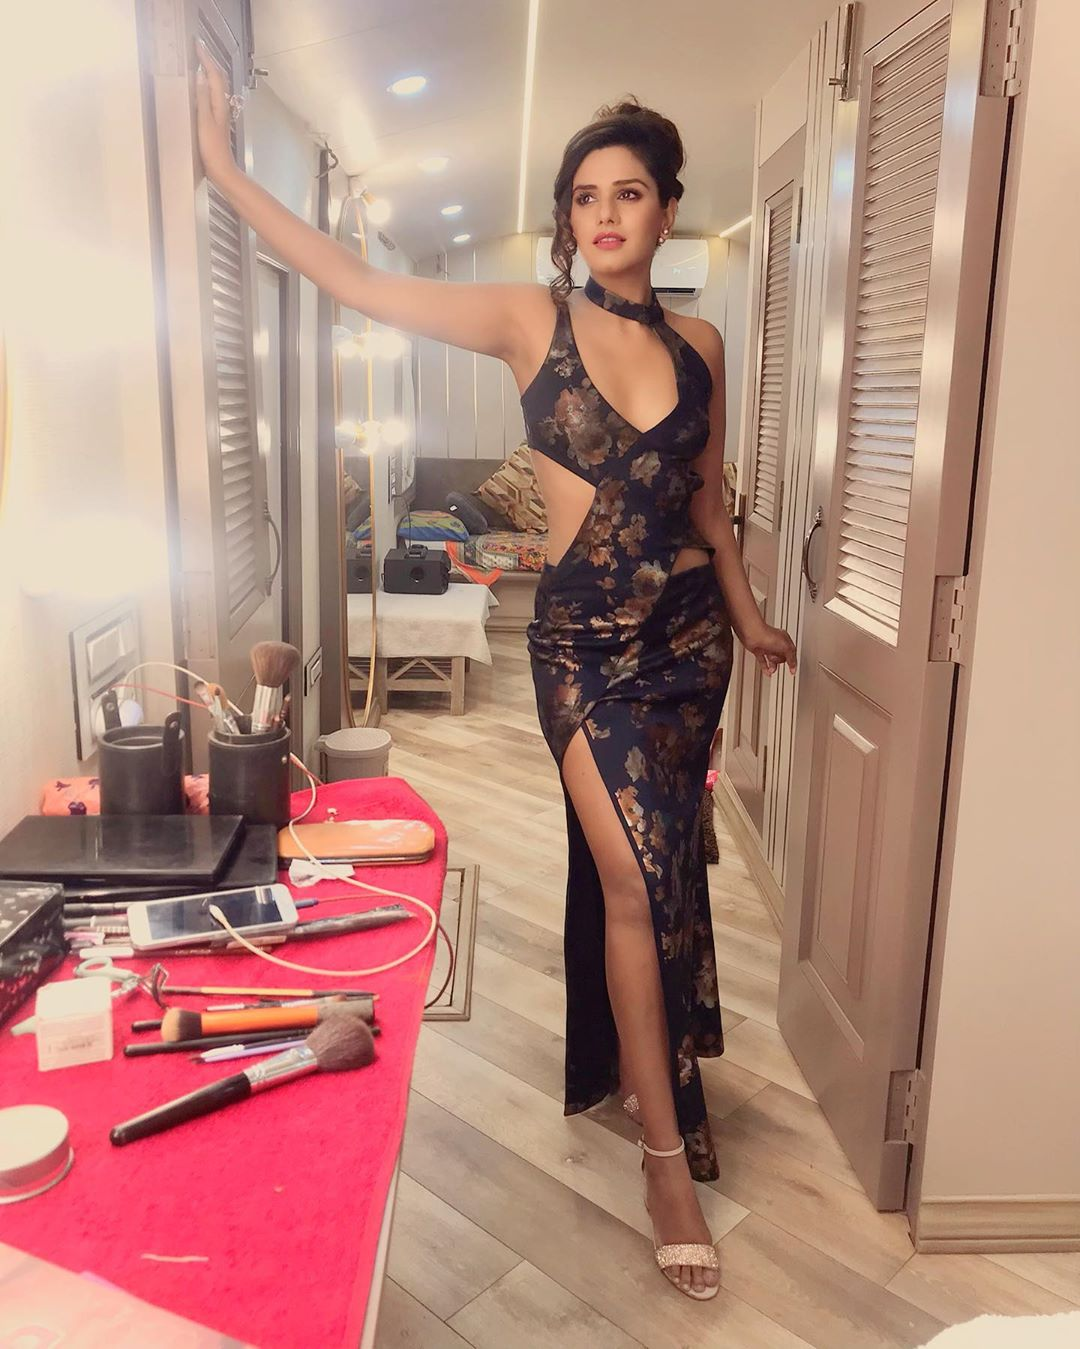 daljeet-kaur-dating-an-actor-11-years-younger